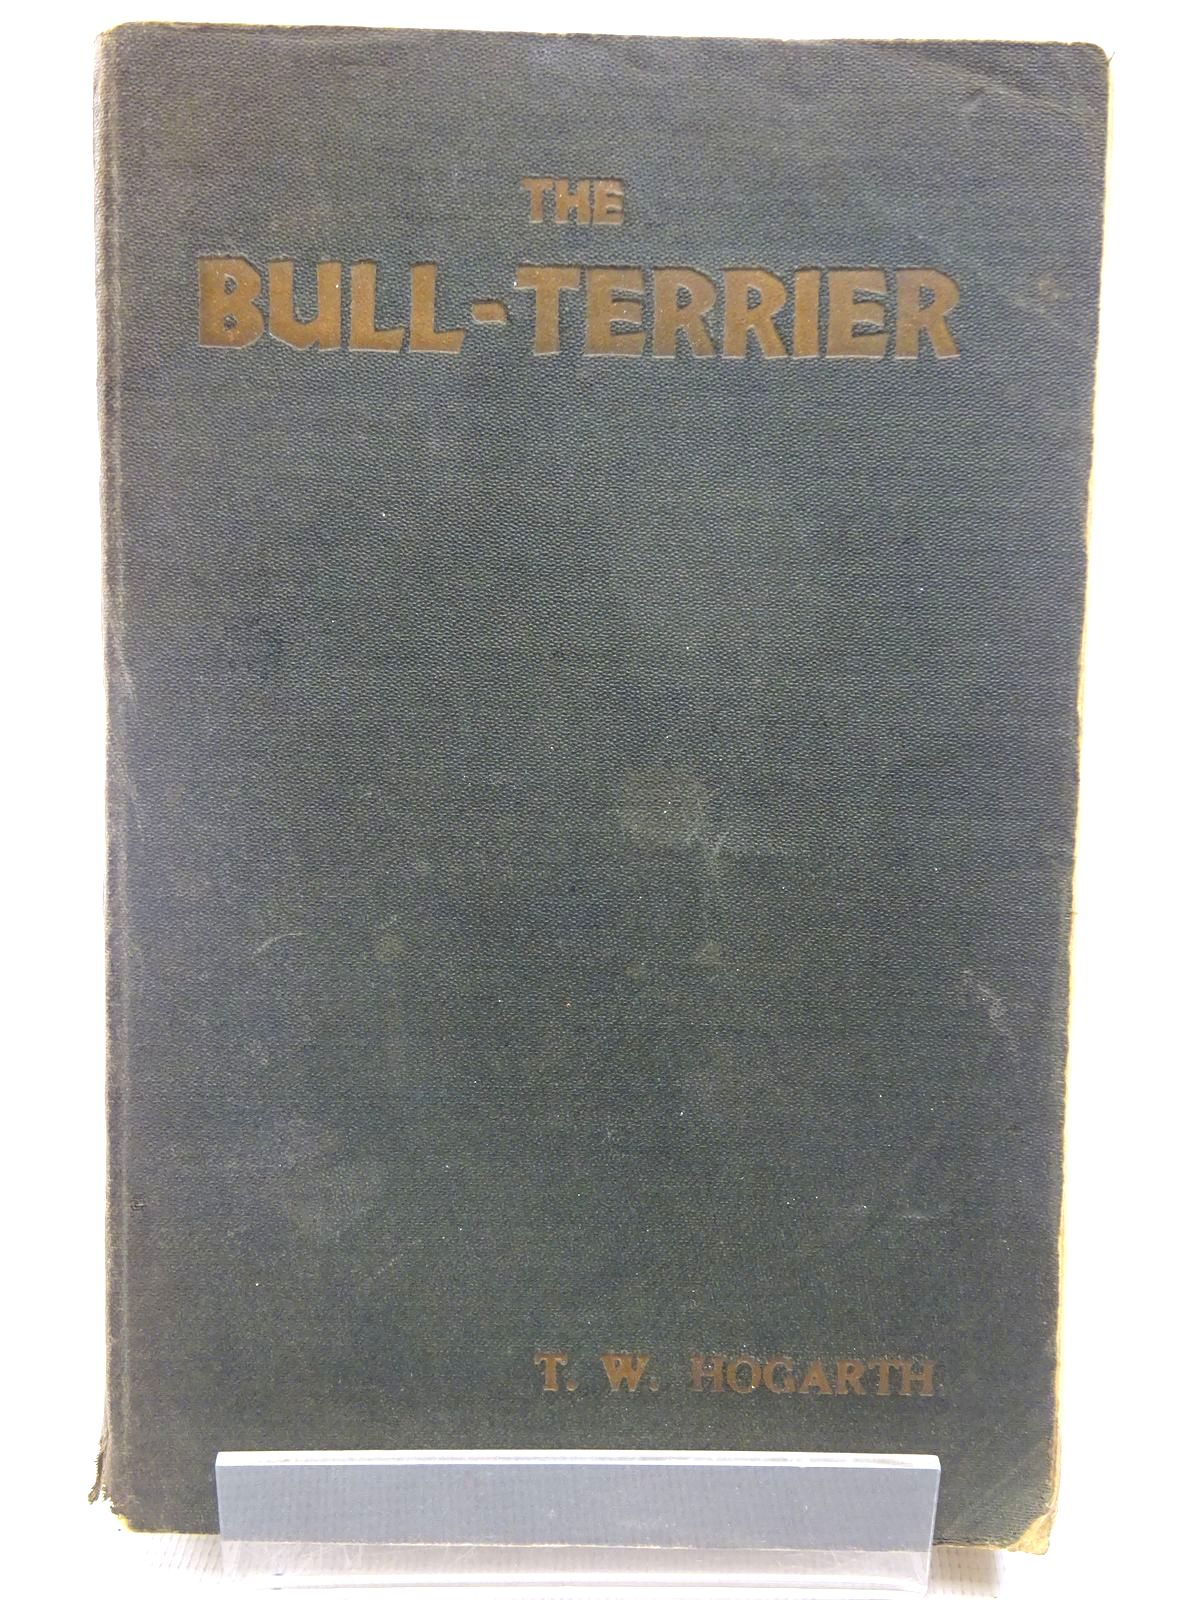 Photo of THE BULL-TERRIER written by Hogarth, T.W. published by Our Dogs Publishing Co. Ltd. (STOCK CODE: 2128689)  for sale by Stella & Rose's Books